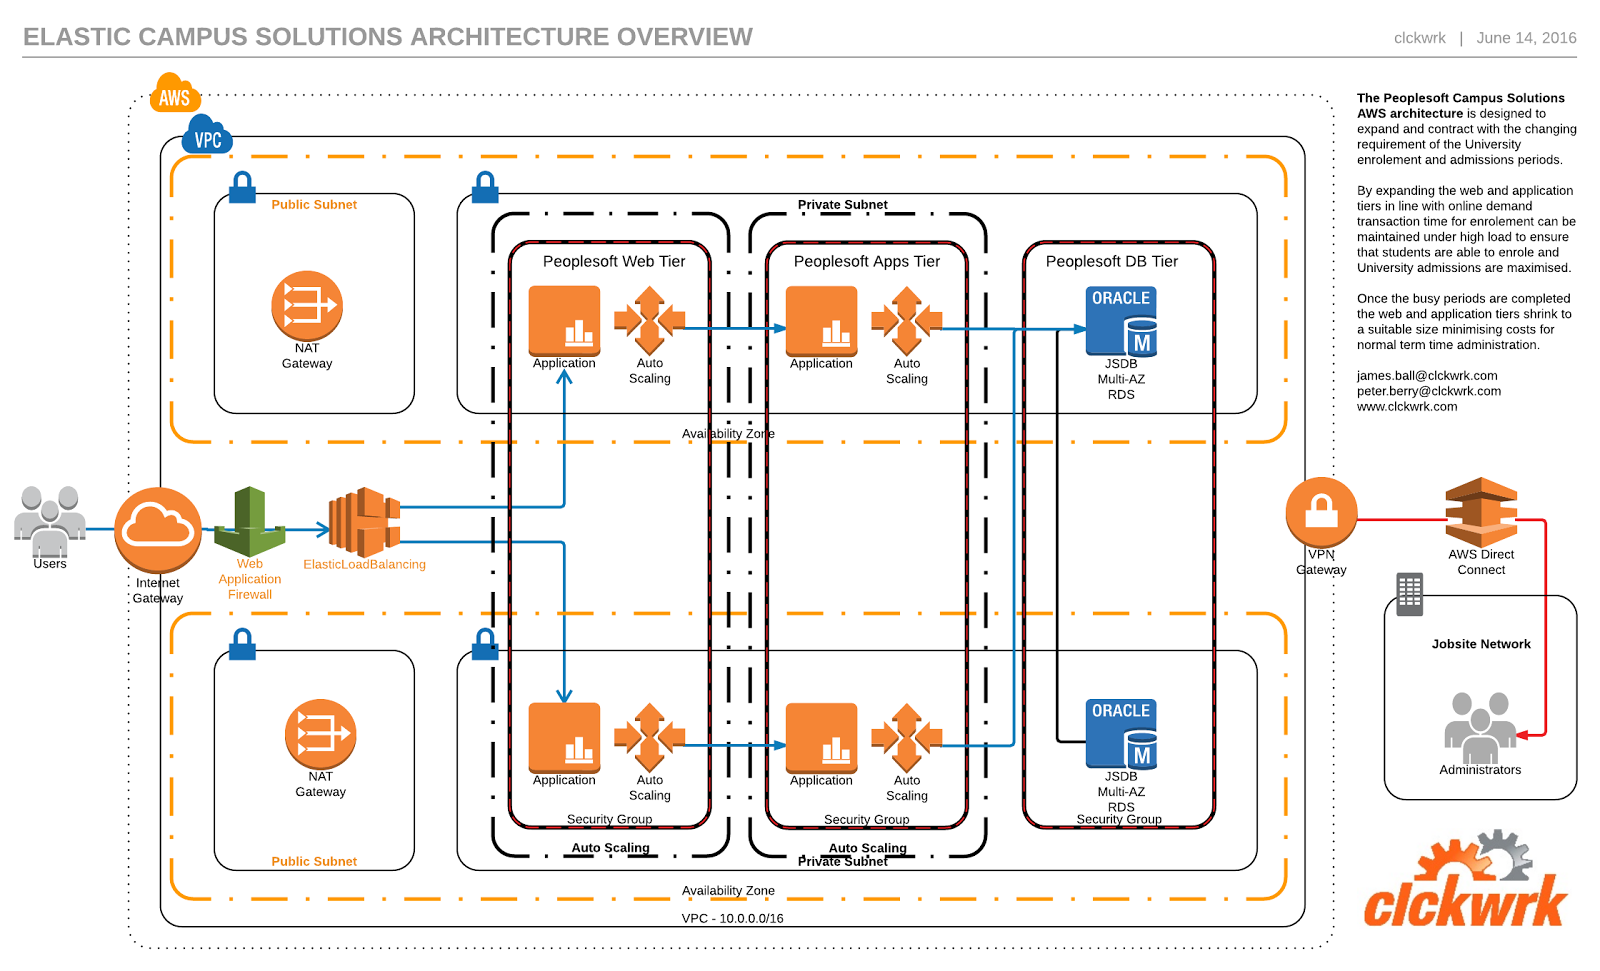 Clckwrk design blueprint peoplesoft campus solutions on aws availability campus solutions needs a high availability infrastructure to ensure that both the administrative and student users can access data at all malvernweather